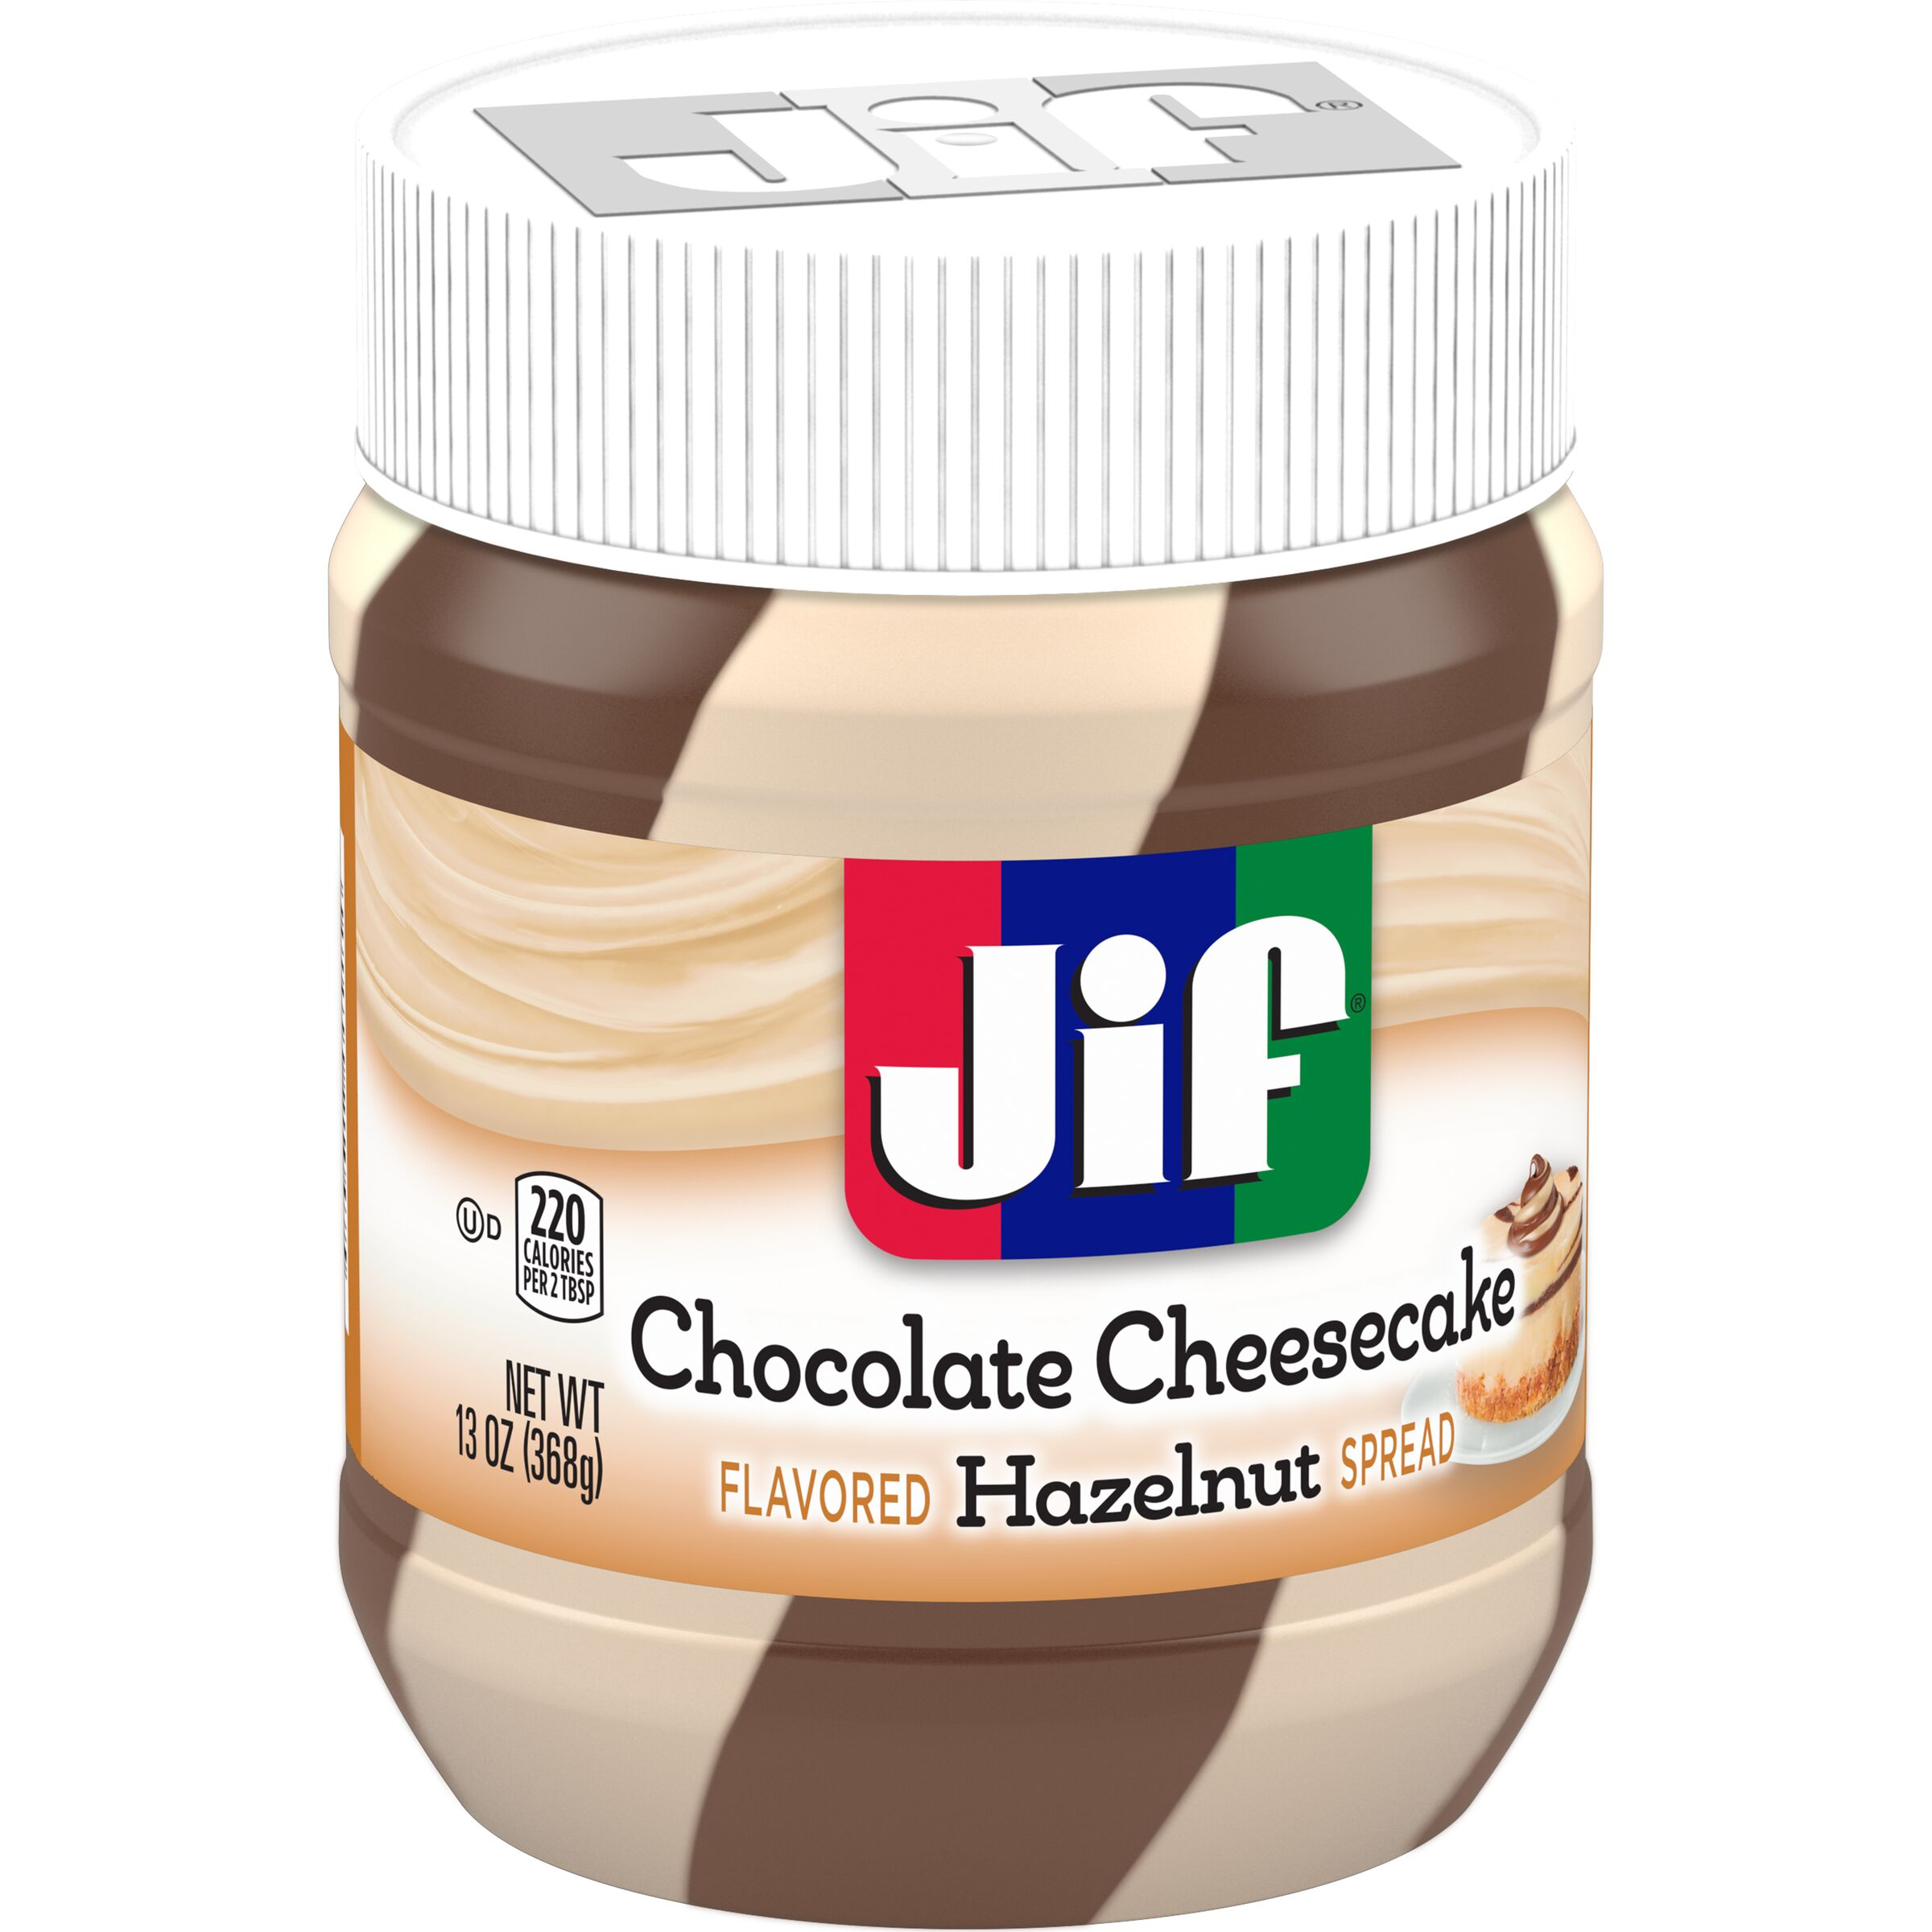 Jif  Chocolate Cheesecake Flavored Hazelnut Spread